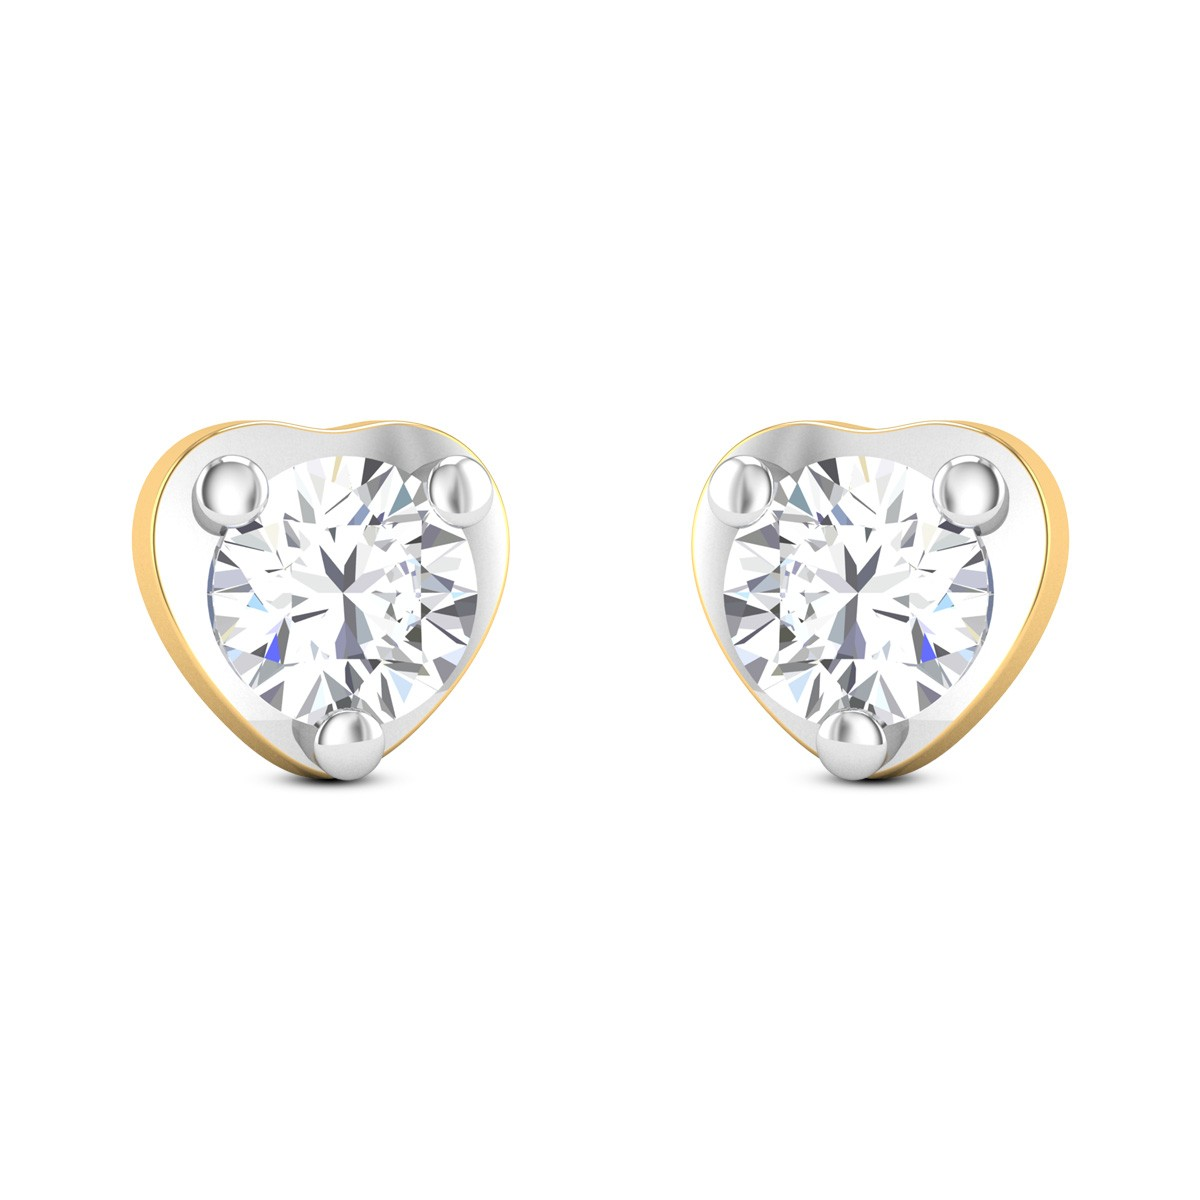 Twinkling Heart Solitaire Earrings